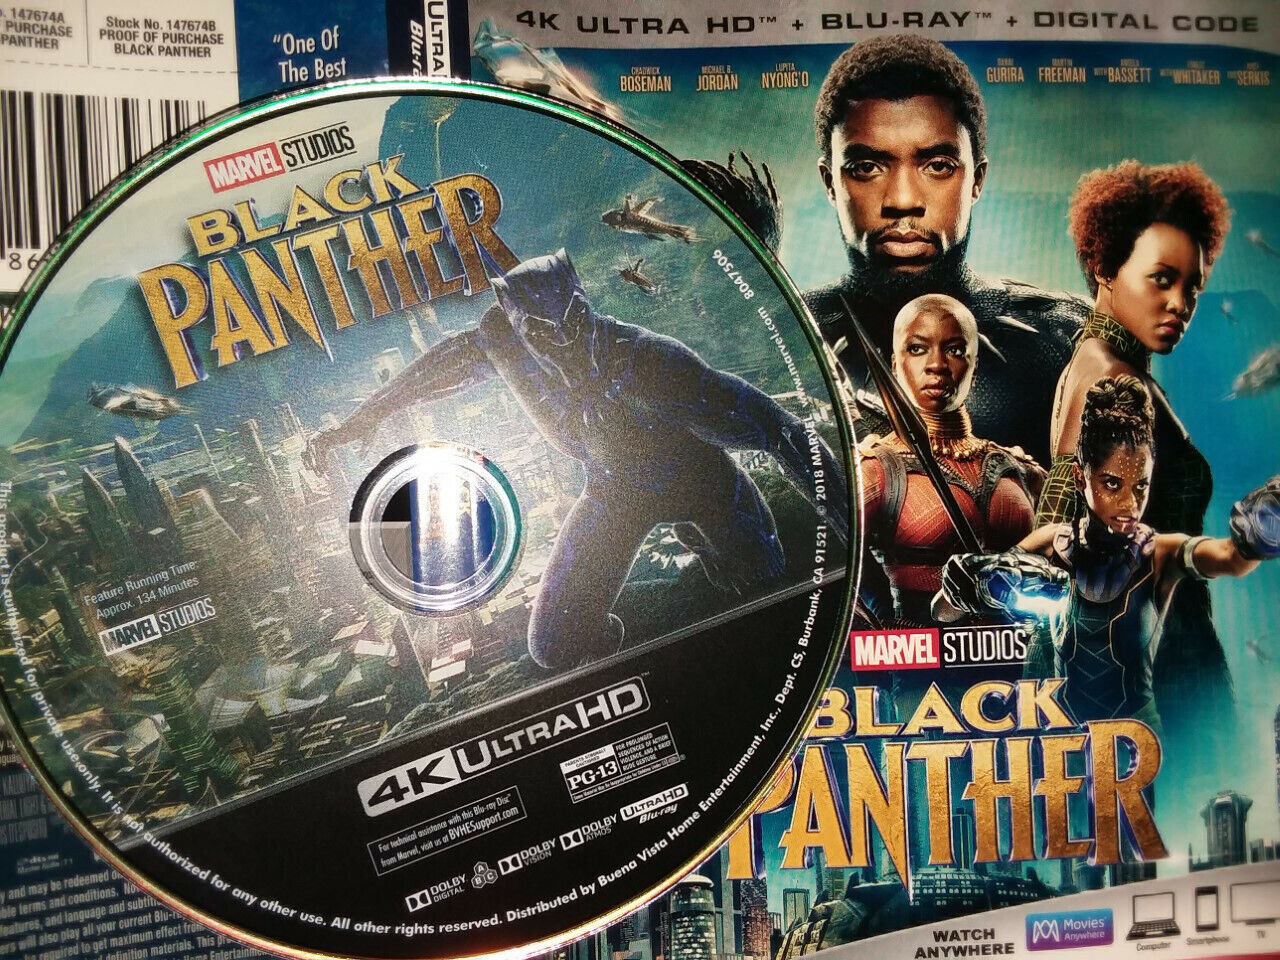 Black Panther 4k DISC ONLY Artwork never Played - $10.99